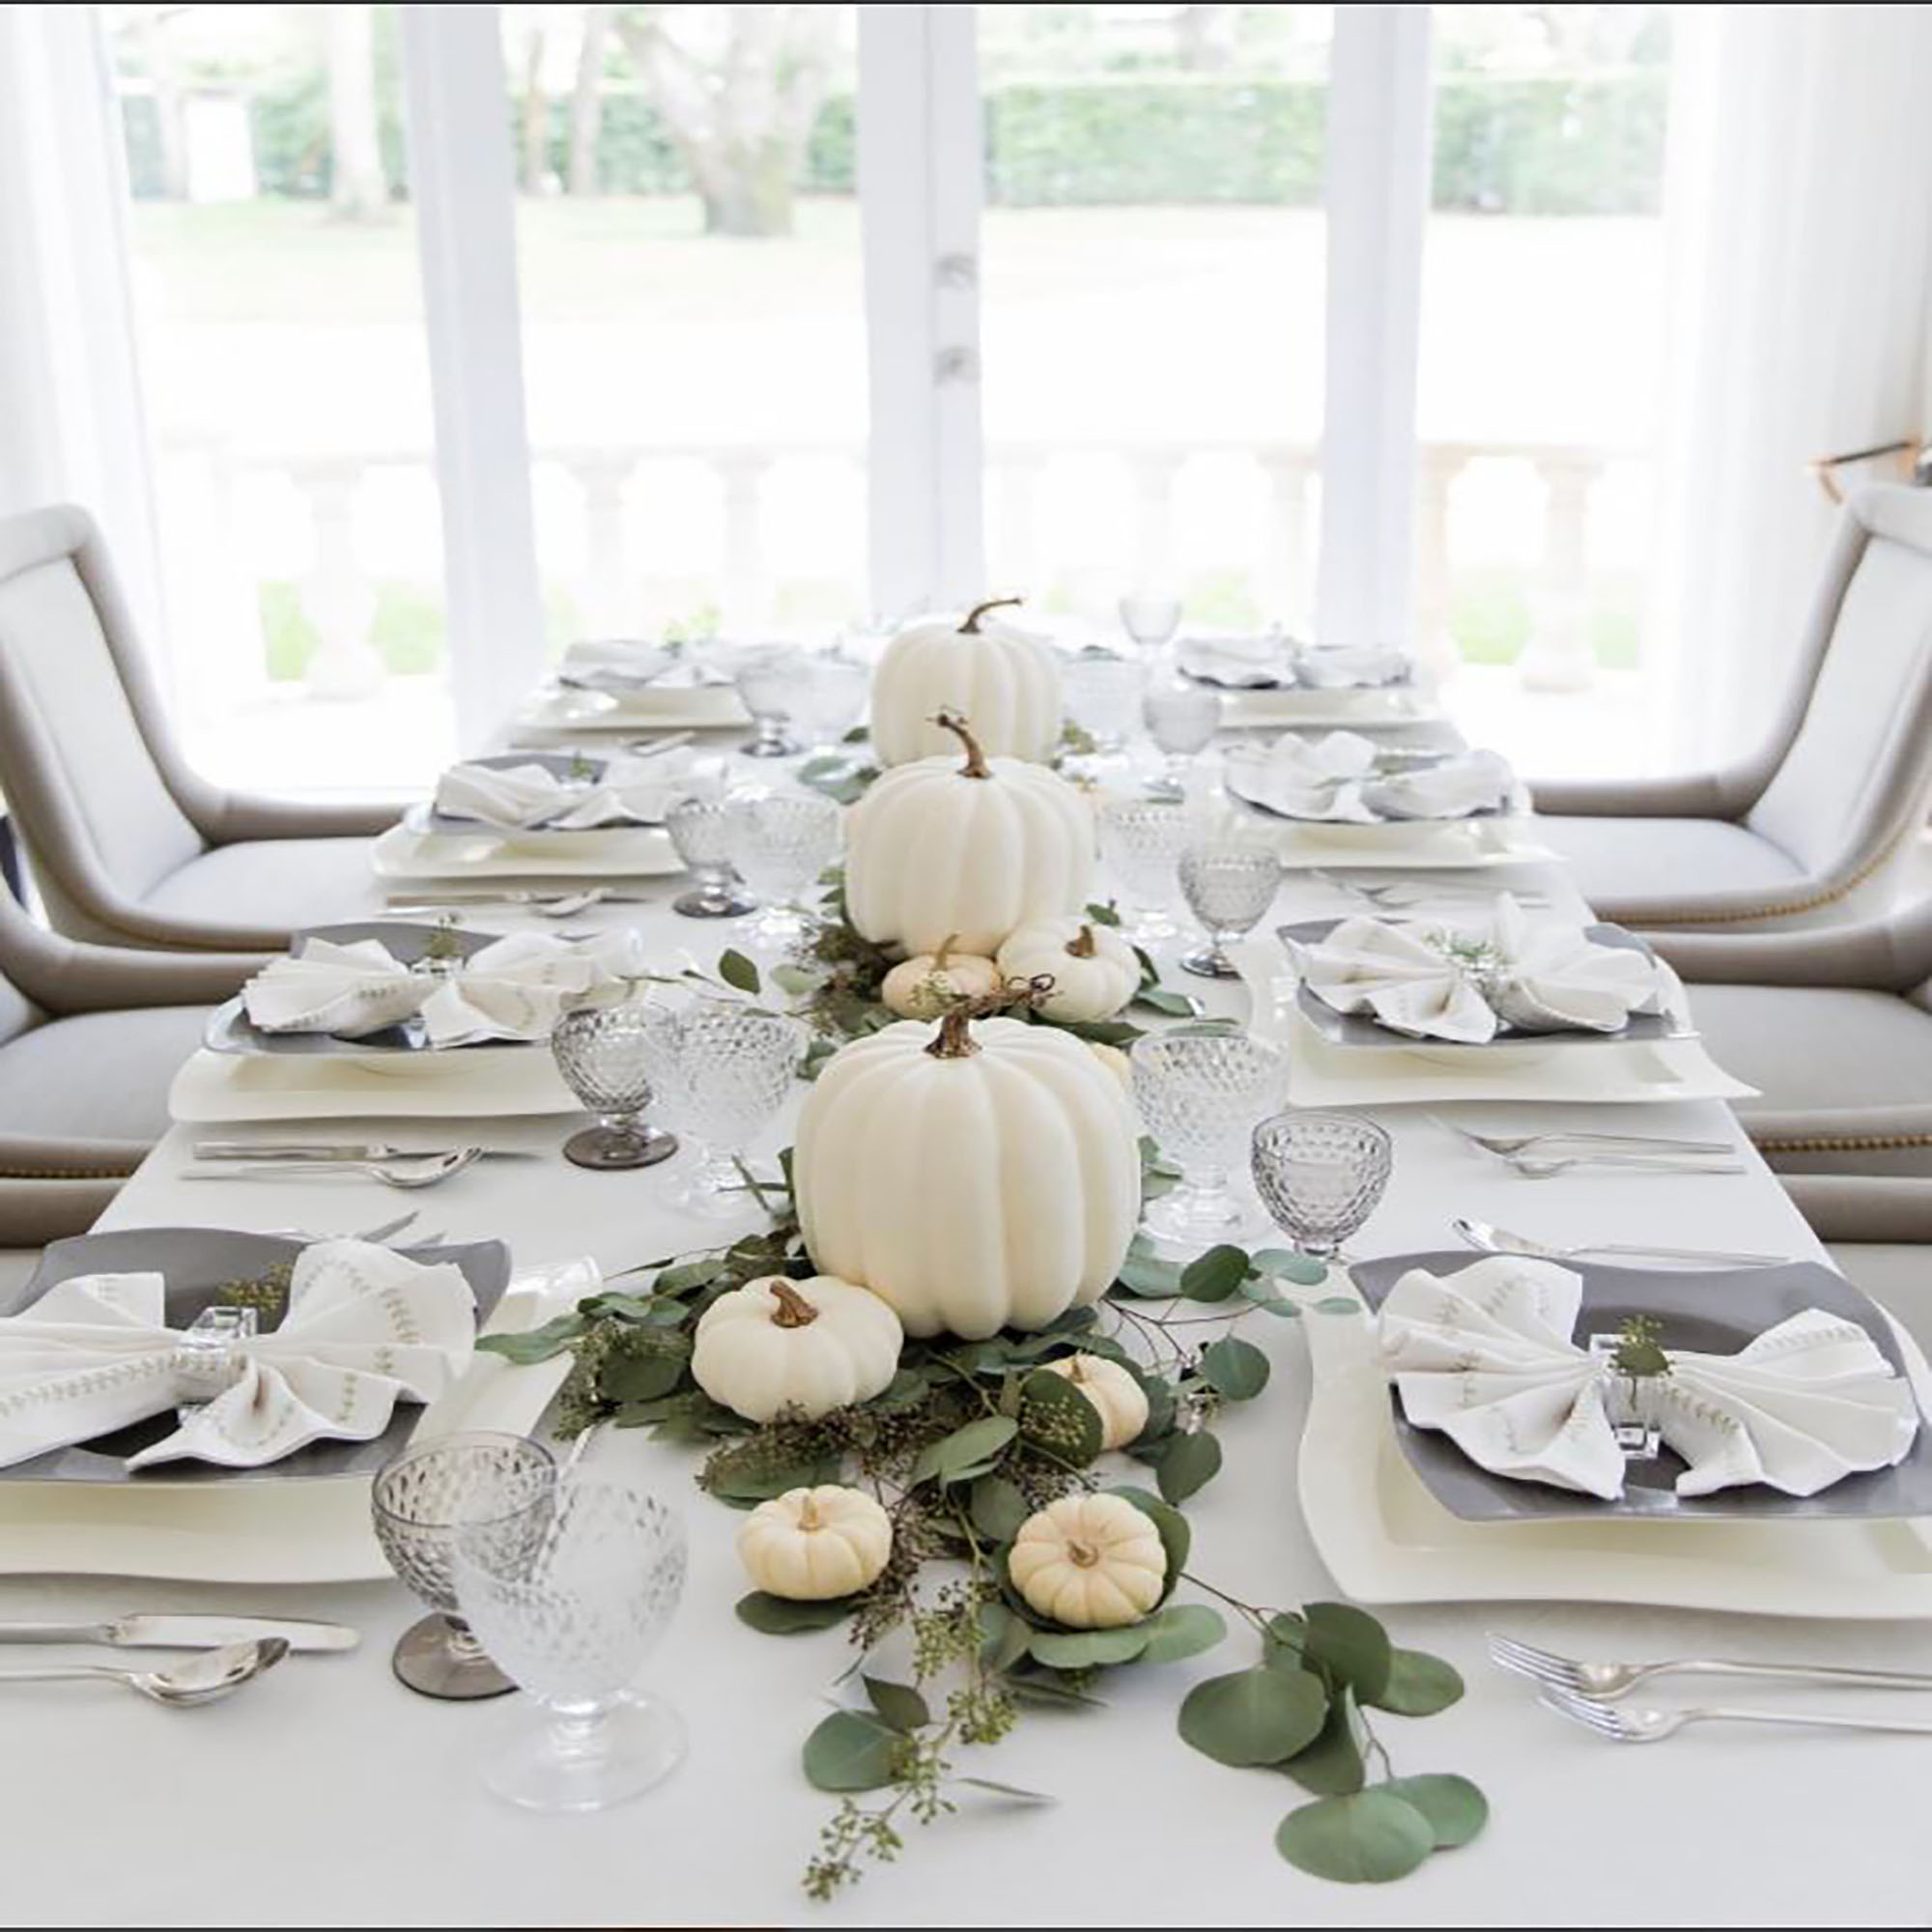 Thanksgiving Table Decorating: 6 IG Inspired Thanksgiving Table Ideas